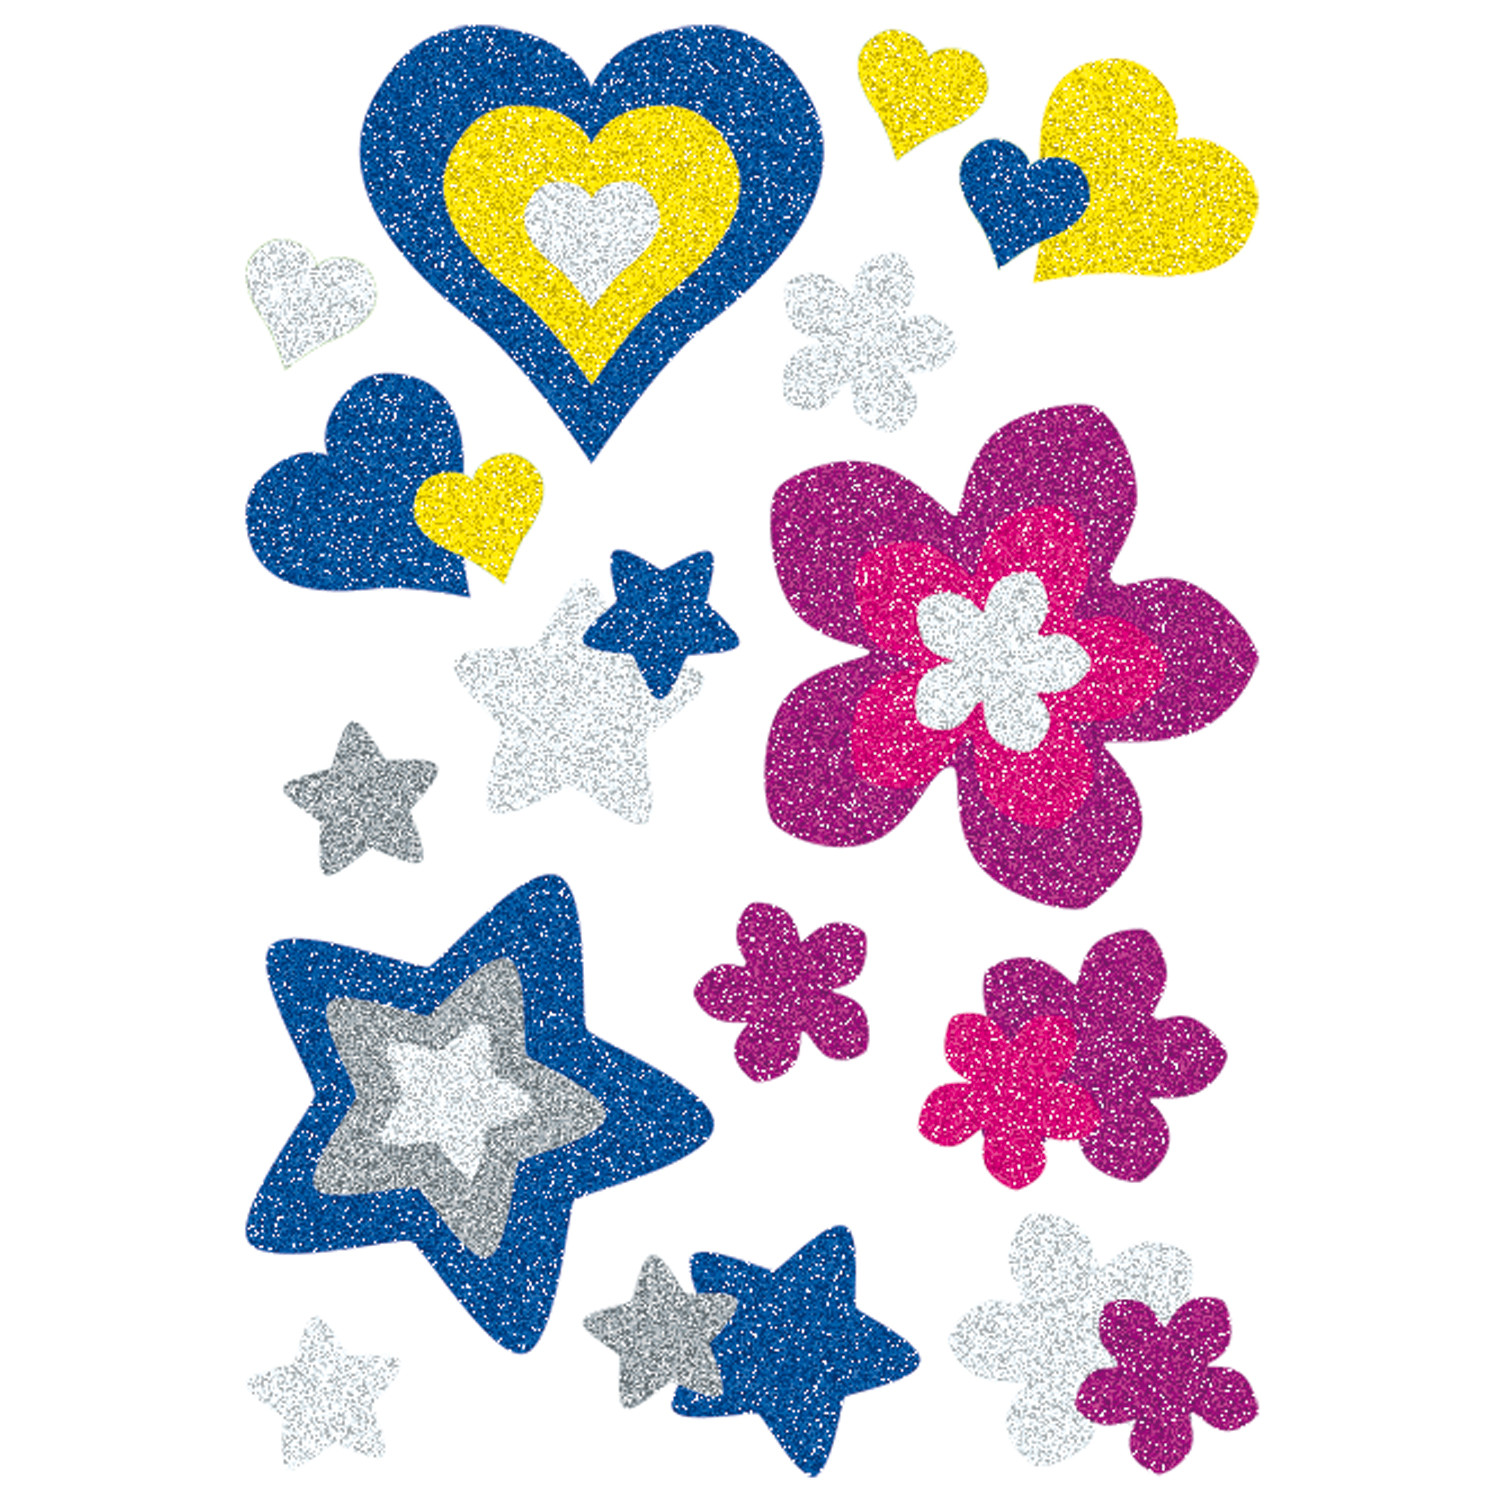 Free Images Of Hearts And Stars, Download Free Clip Art, Free Clip.